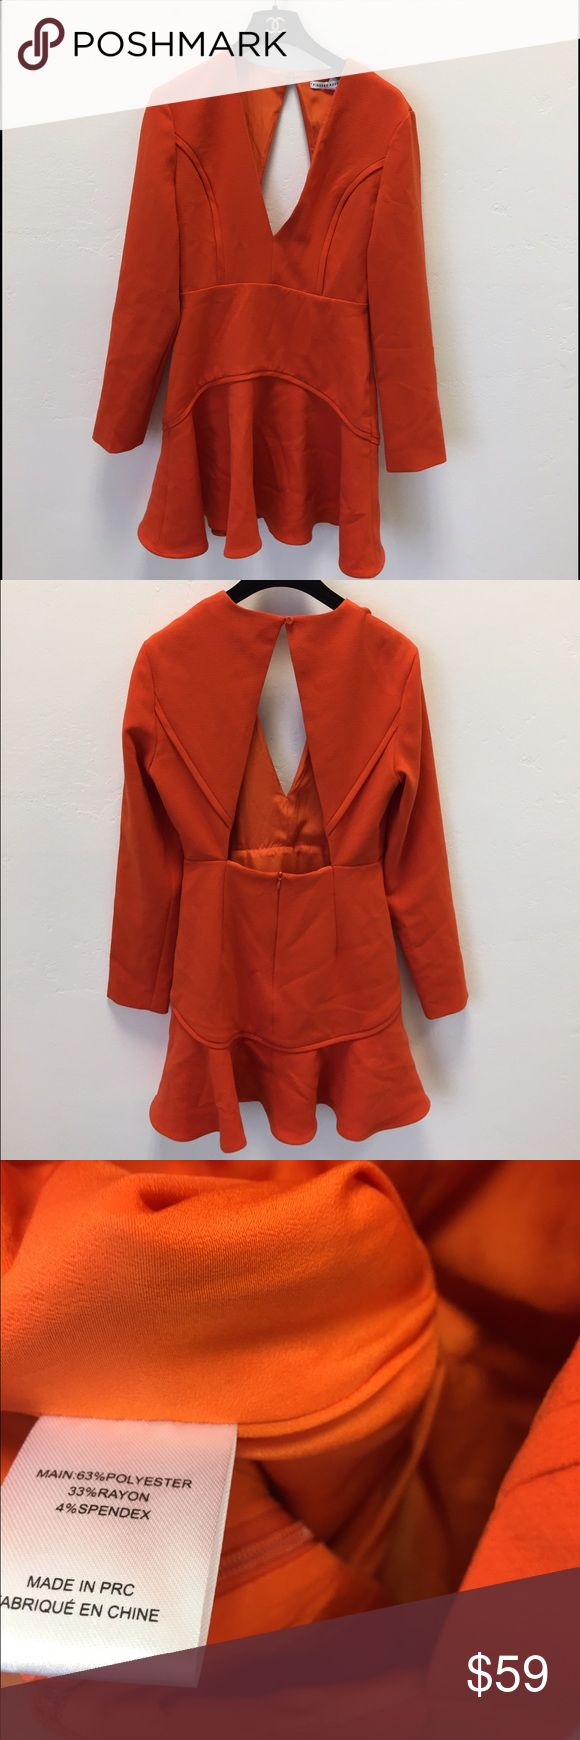 Finders Keepers Orange Ruffle Dress Size Small new Finders Keepers Orange Ruffle Dress Size Small new without tags so cute and grily Finders Keepers Dresses Mini